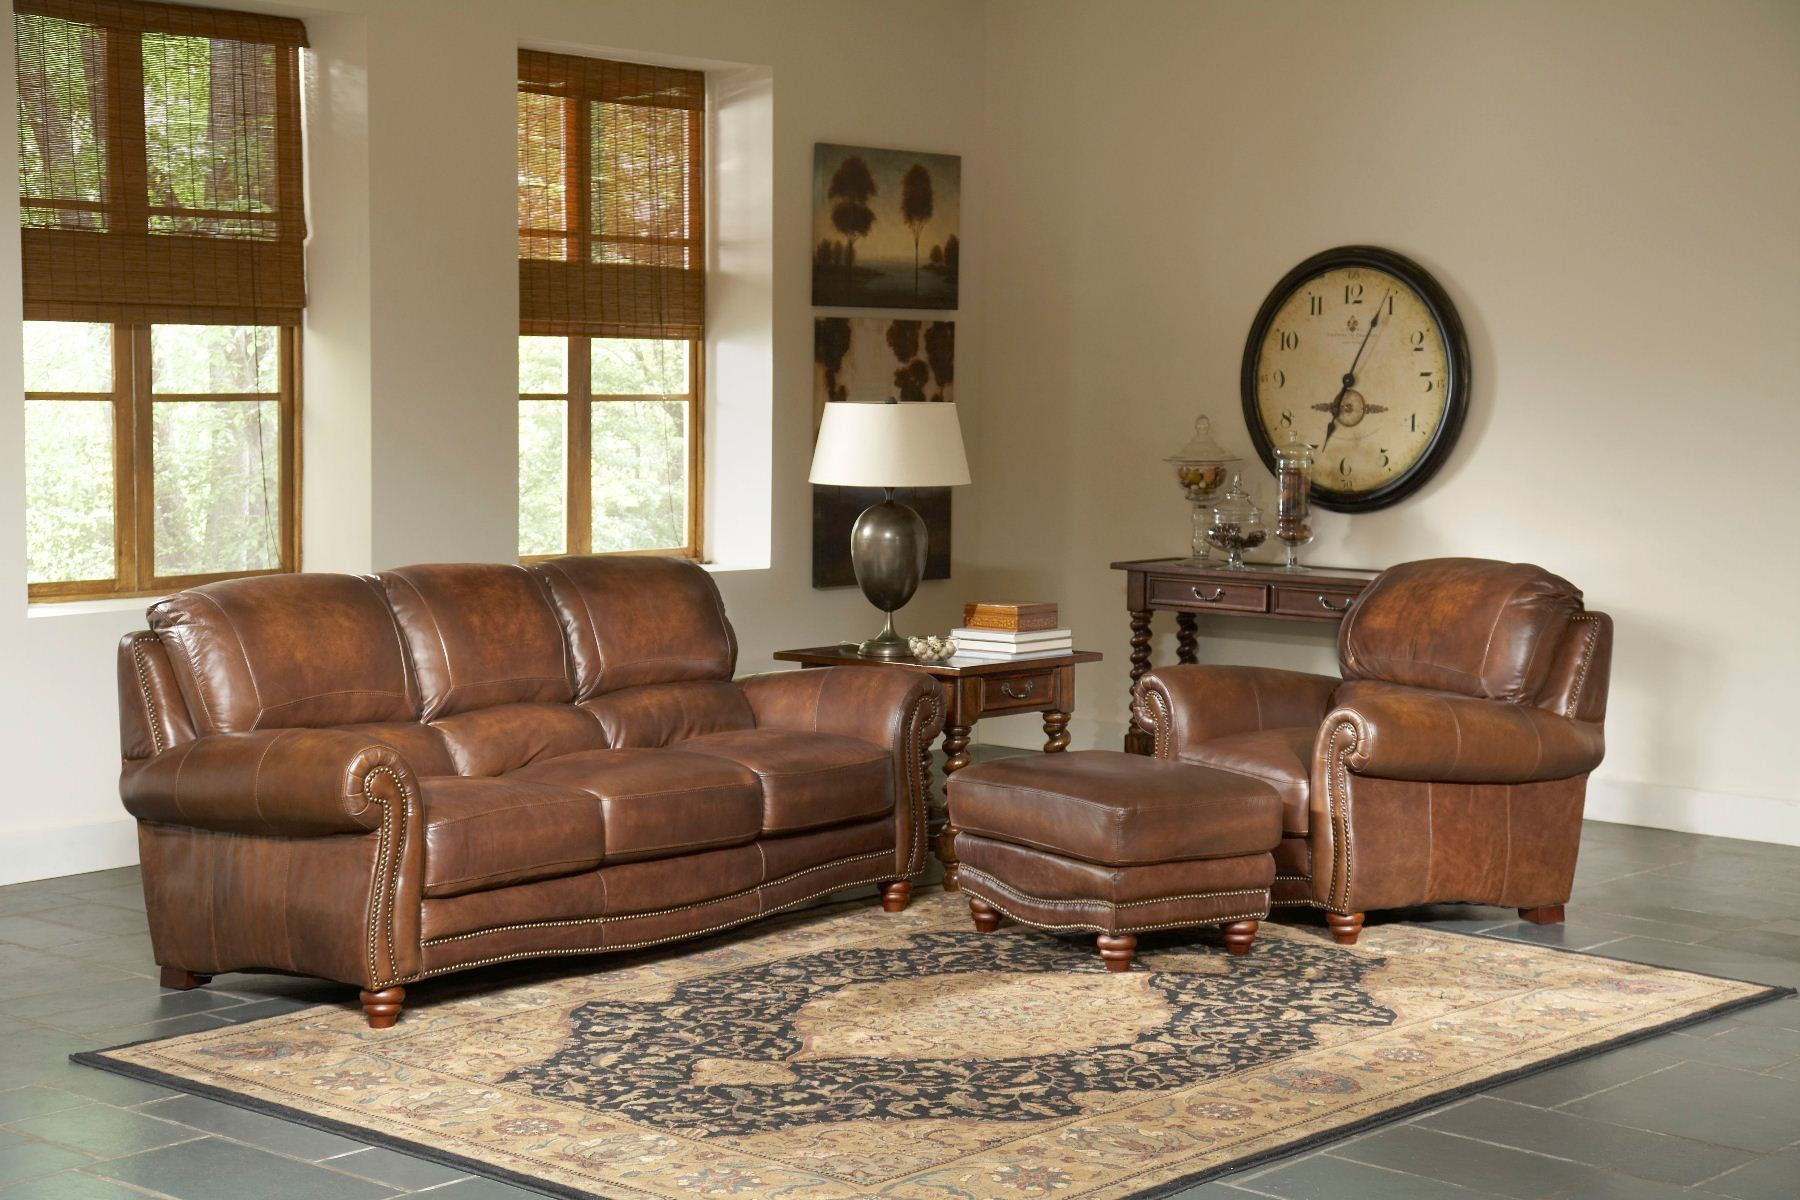 Largo phoenix living room set l2590 living room furniture